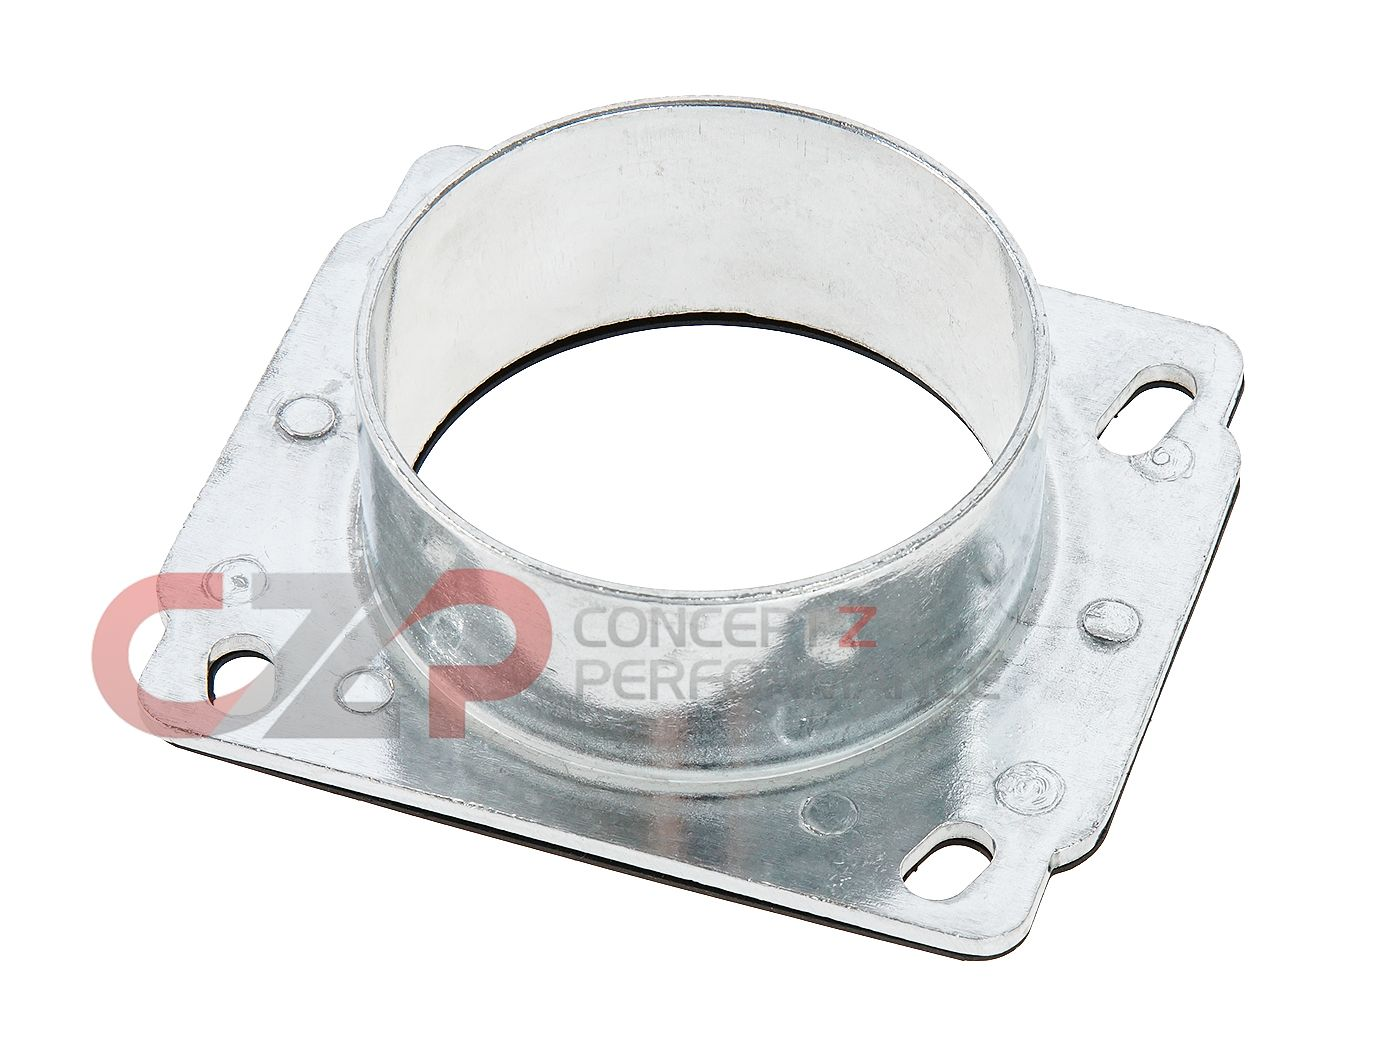 Vibrant Performance Mass Air Flow Sensor Adapter Plate, for Nissan applications